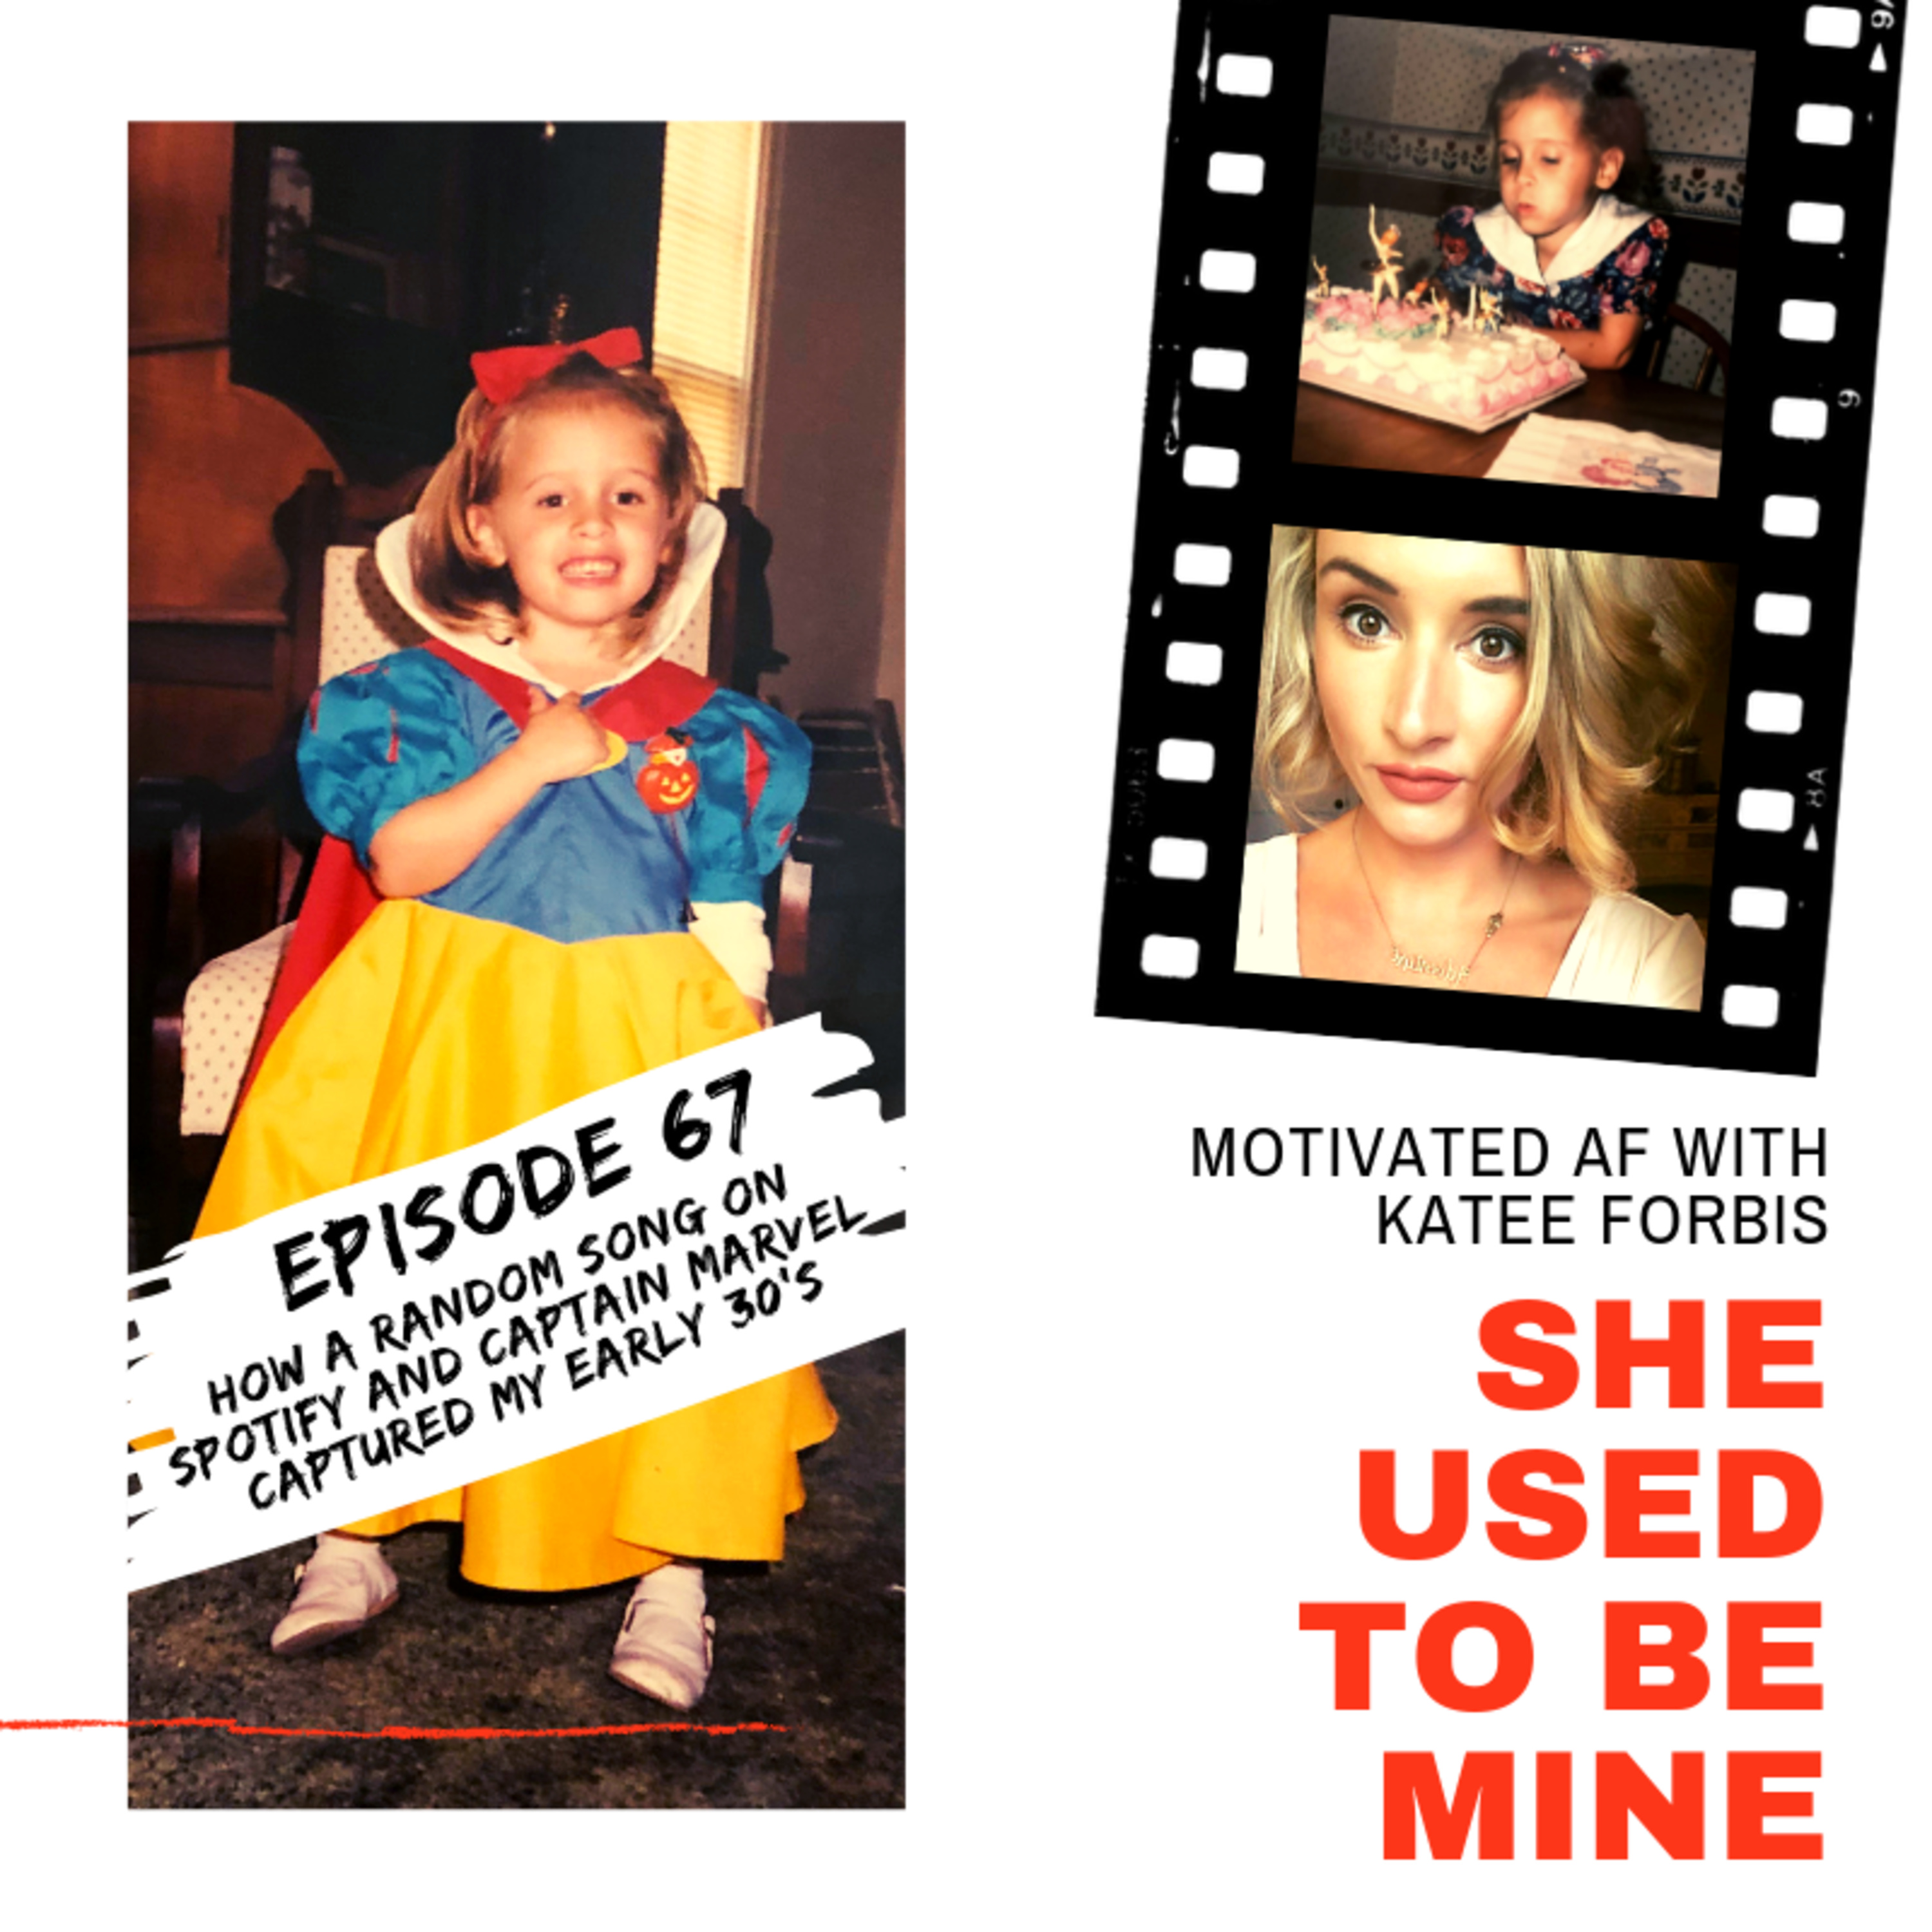 Ep. 67 - She Used To Be Mine: How A Random Song On Spotify And Captain Marvel Captured My Early 30's